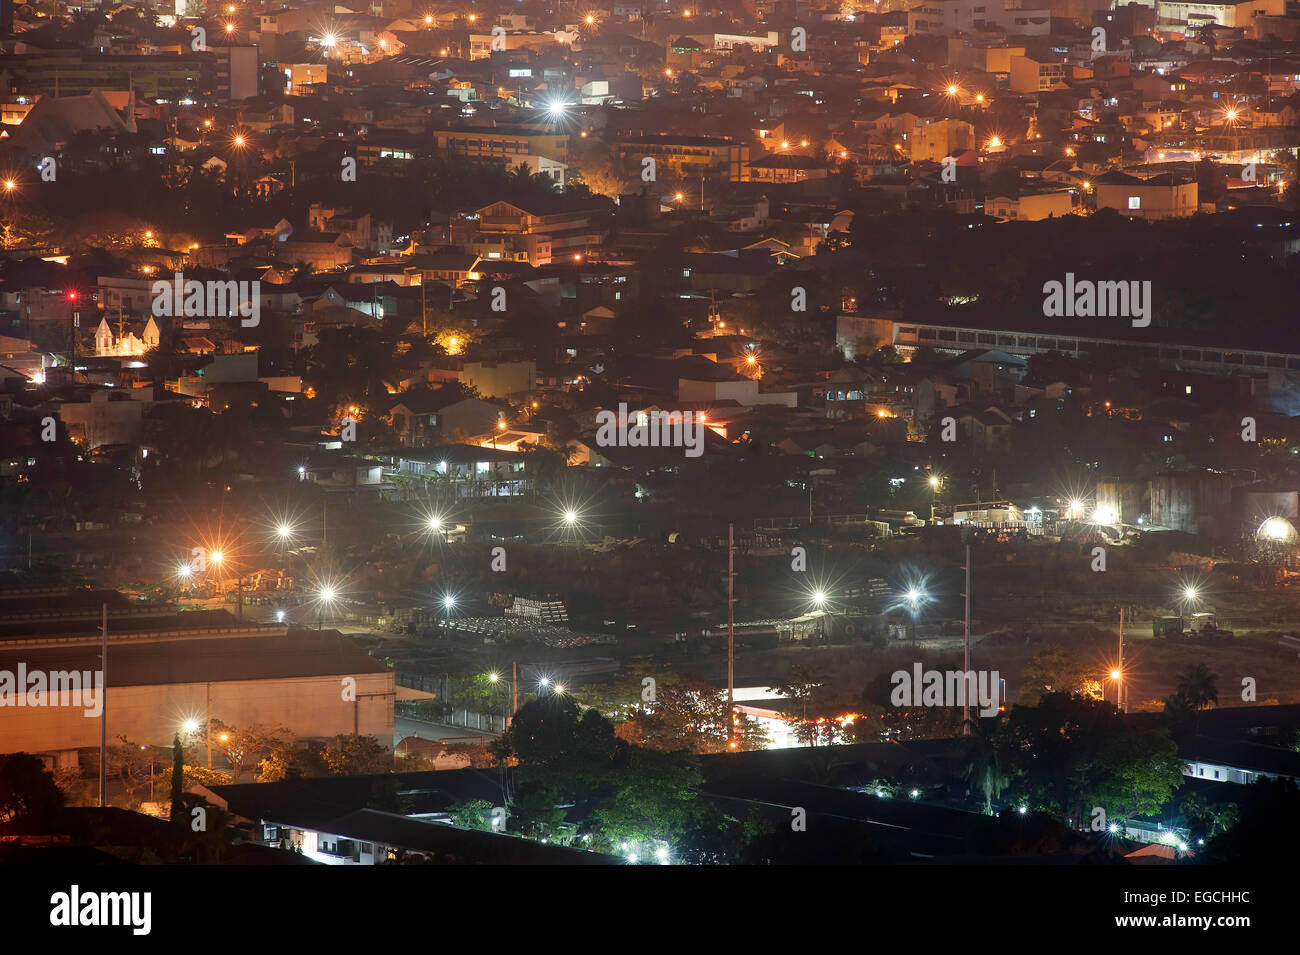 The lights of Pasig City at night,, Metro Manila, Philippine Islands, South East Asia. - Stock Image